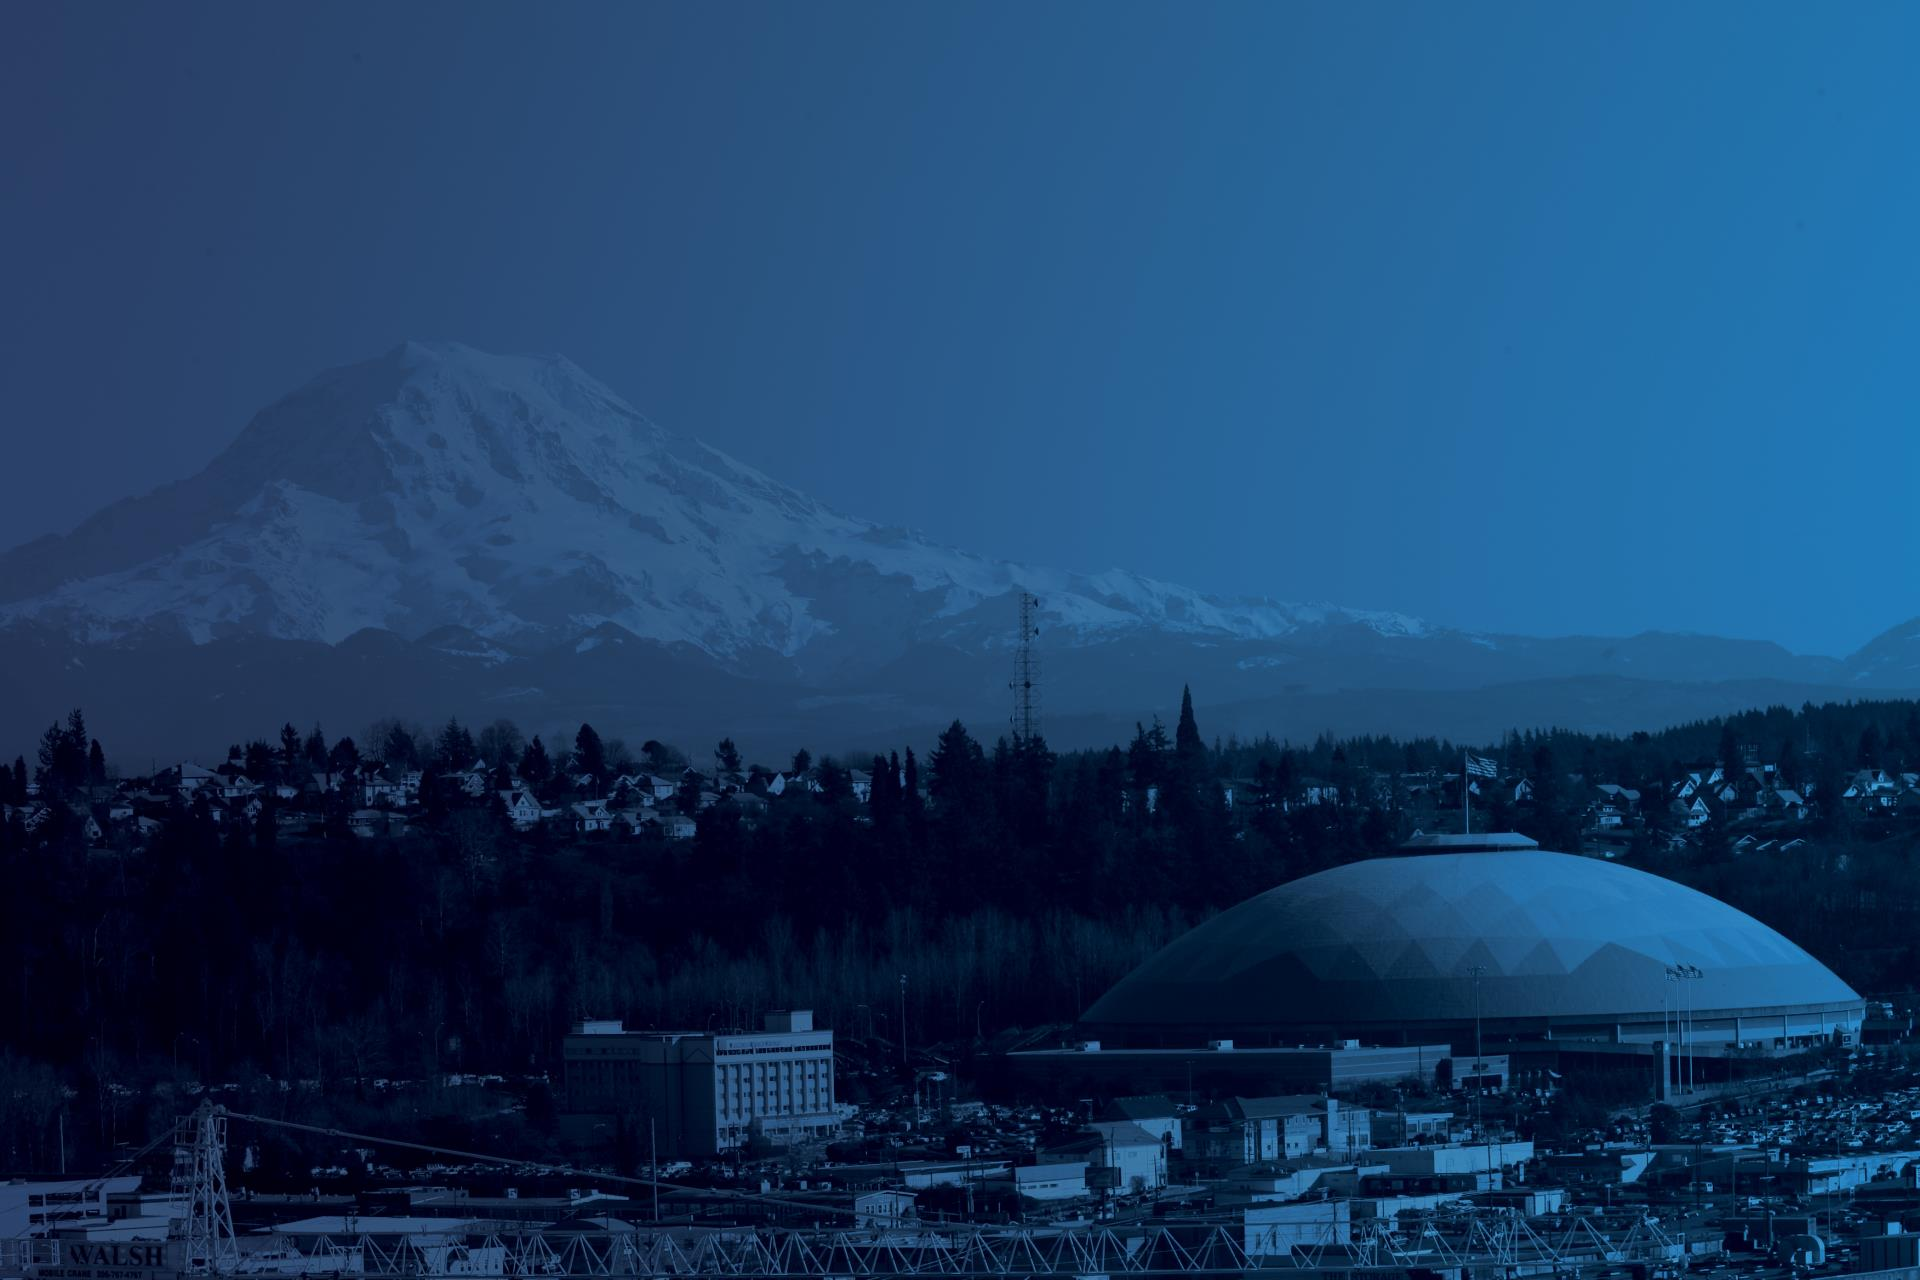 View of Mt. Rainier and the Tacoma Dome with a blue color overlay.